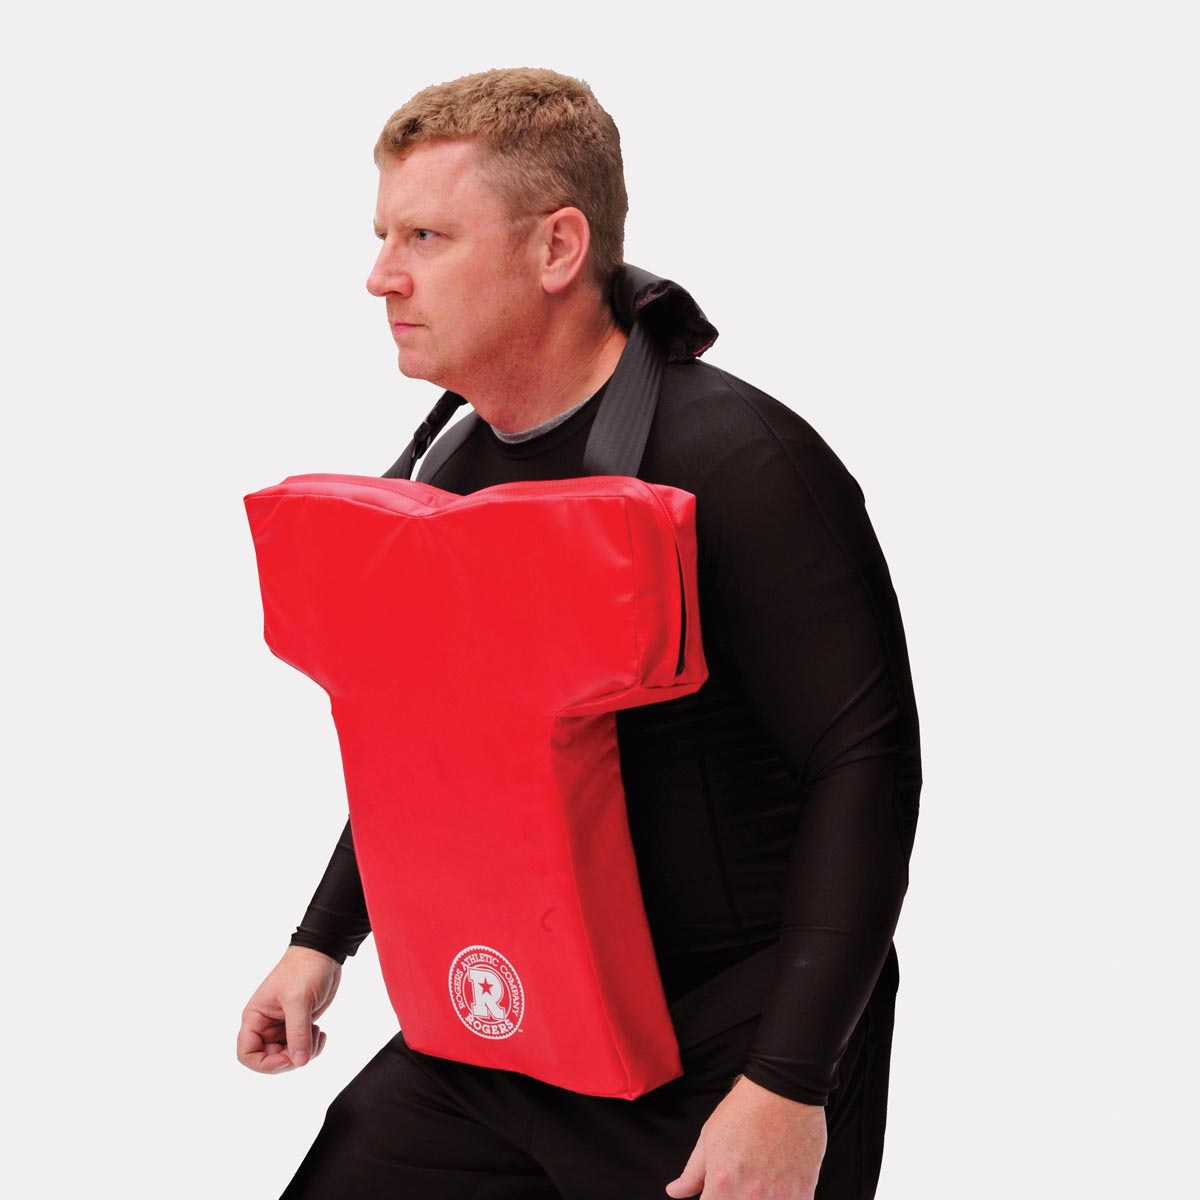 football shields - no hands pad